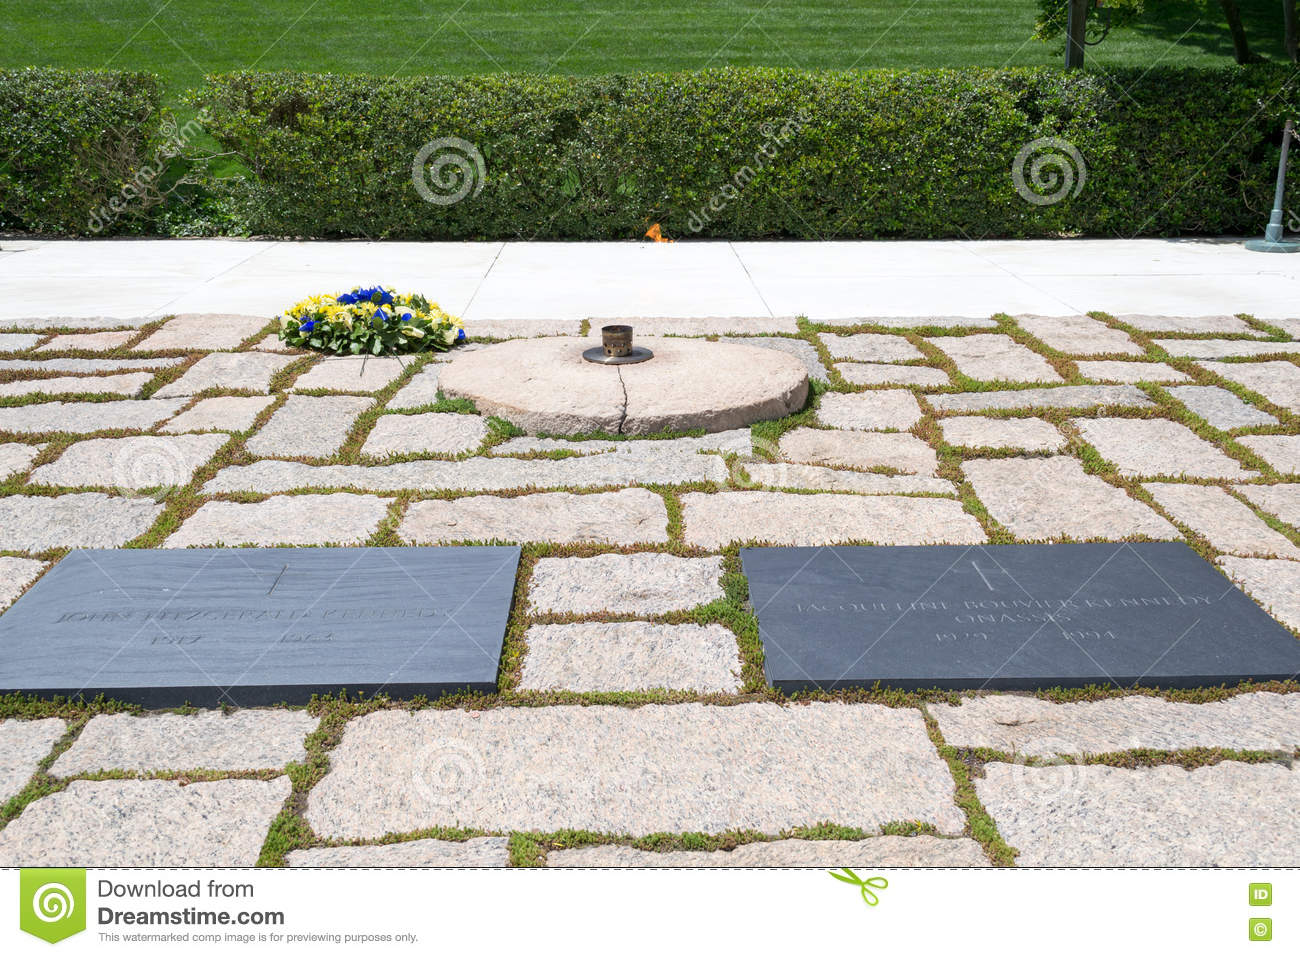 Jfk Grab In Arlington Nationalem Friedhof Stockbild Bild Von